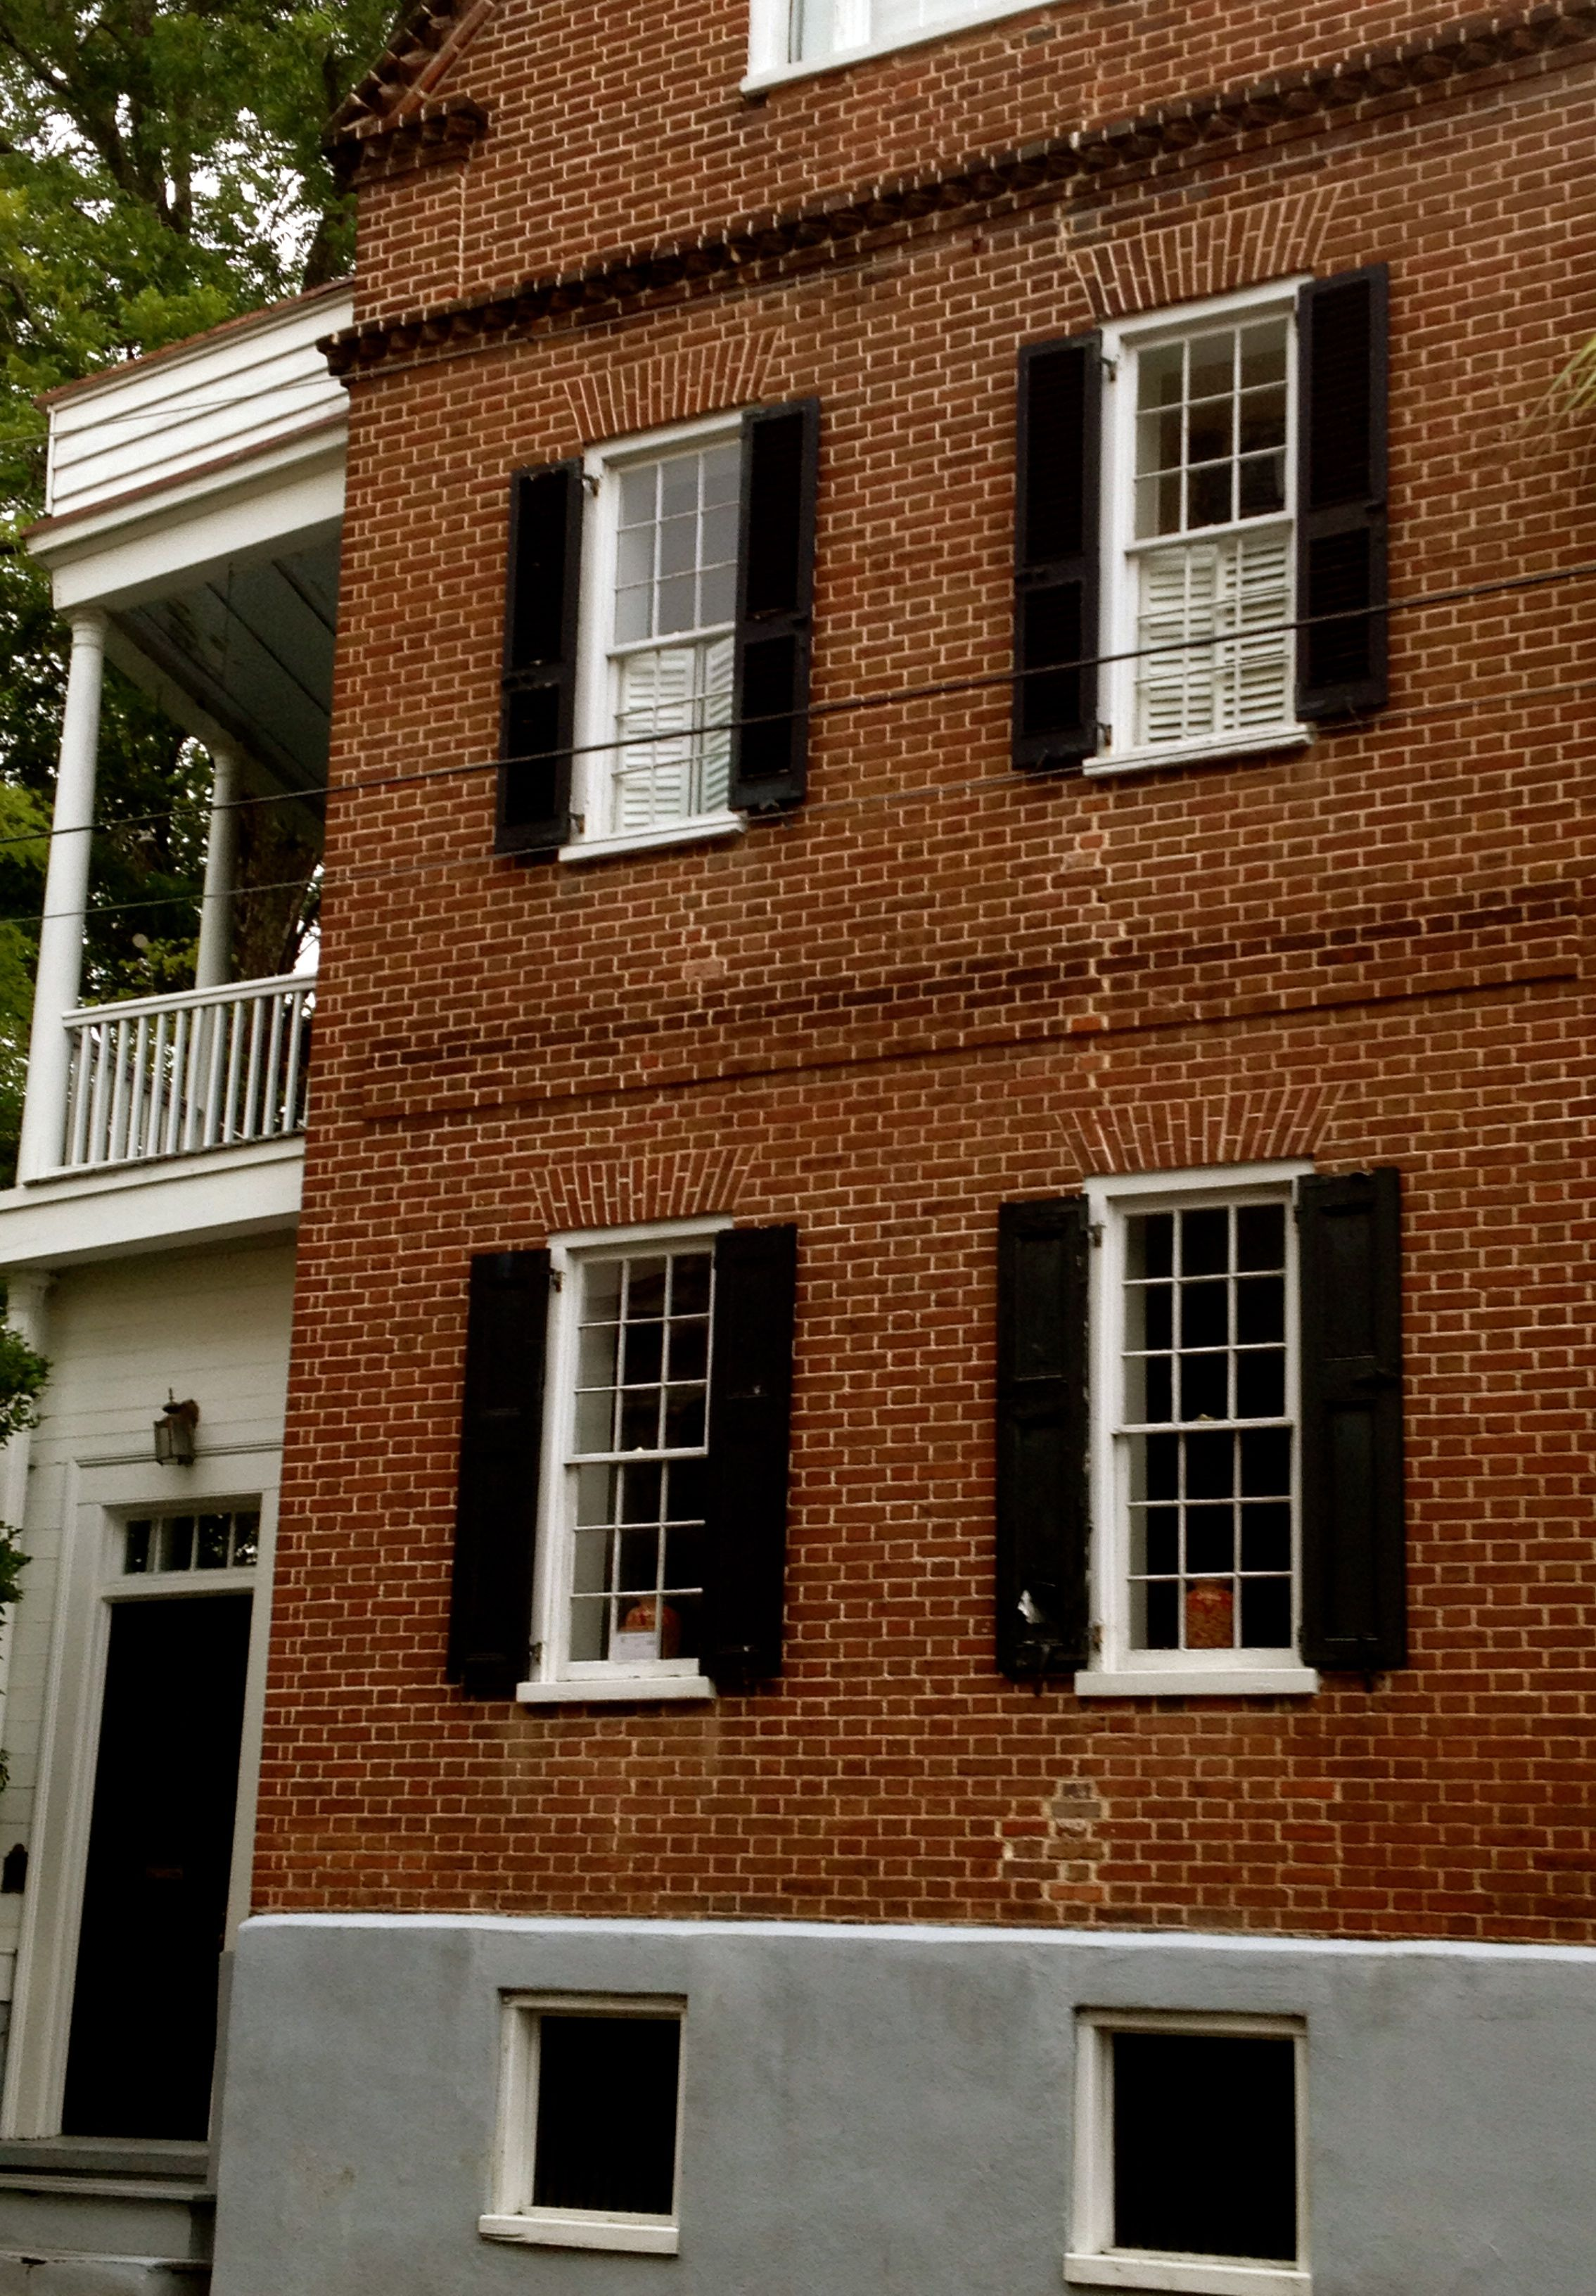 Red Bricks~House Of History, LLC. Please Do Not Change My Captions Or